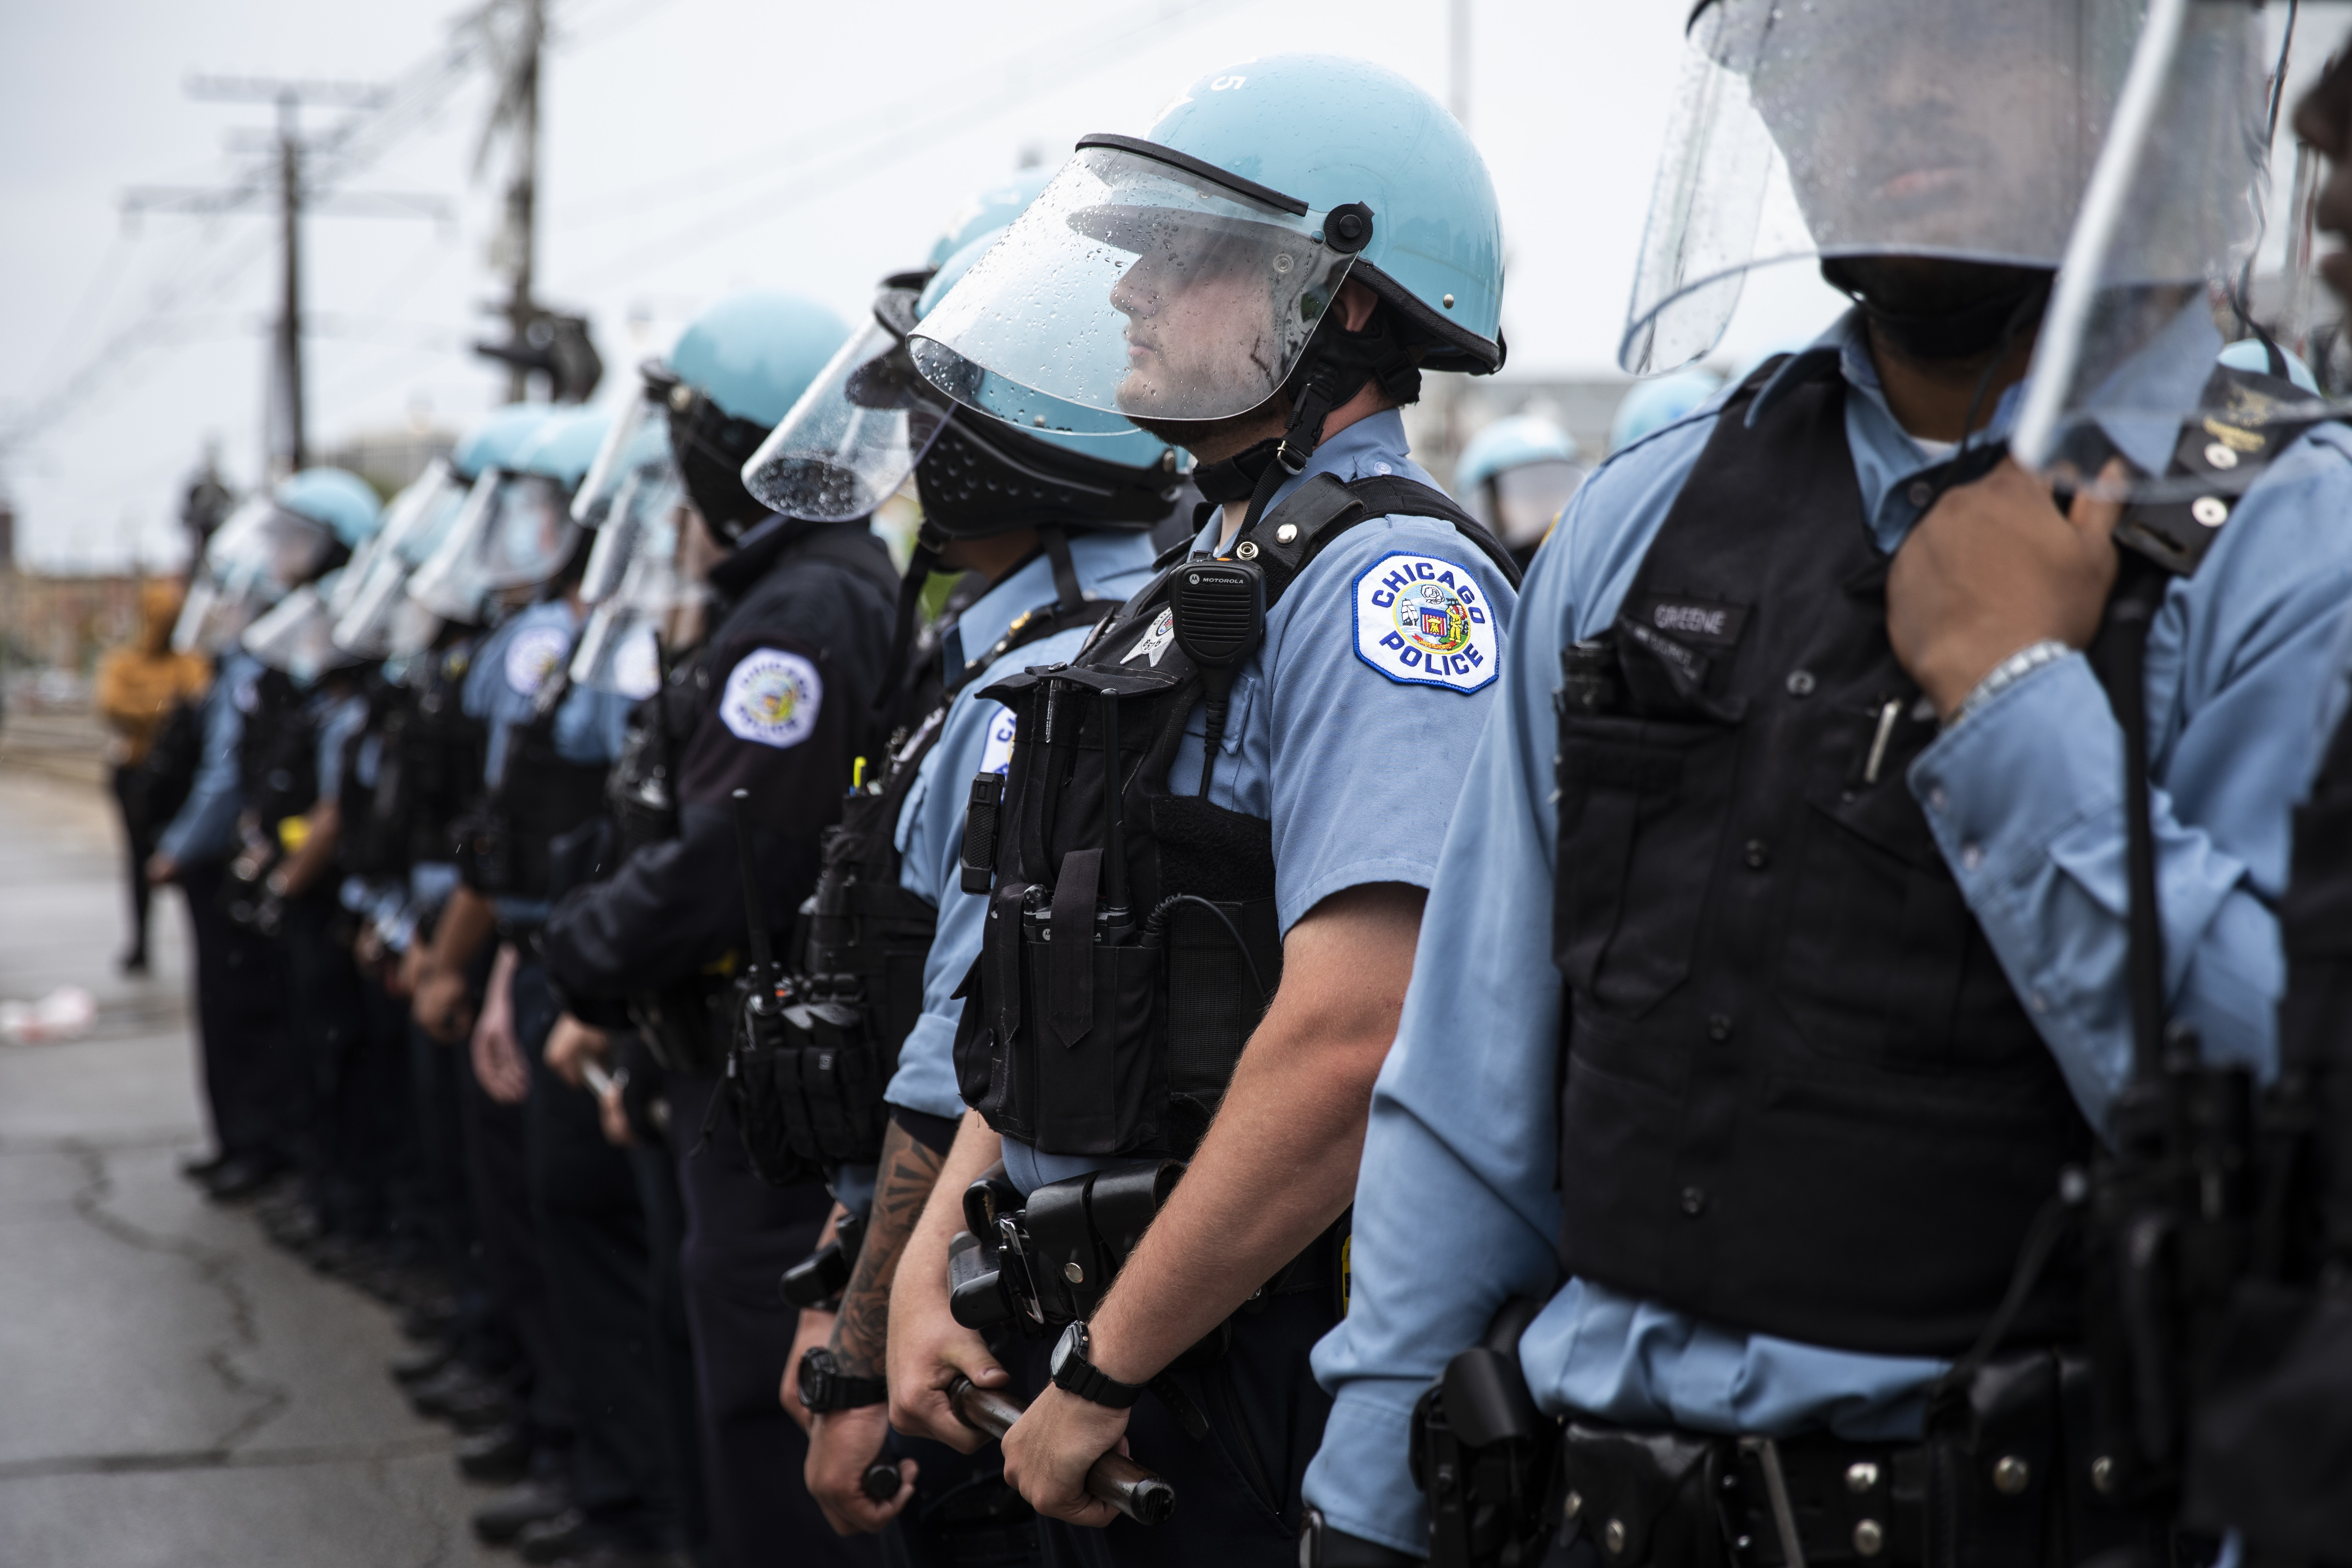 These Chicago police officers were on duty near East 71st Street and South Chappel Avenue in South Shore on Monday, June 1, 2020 after a weekend of protests, riots and looting throughout the city.